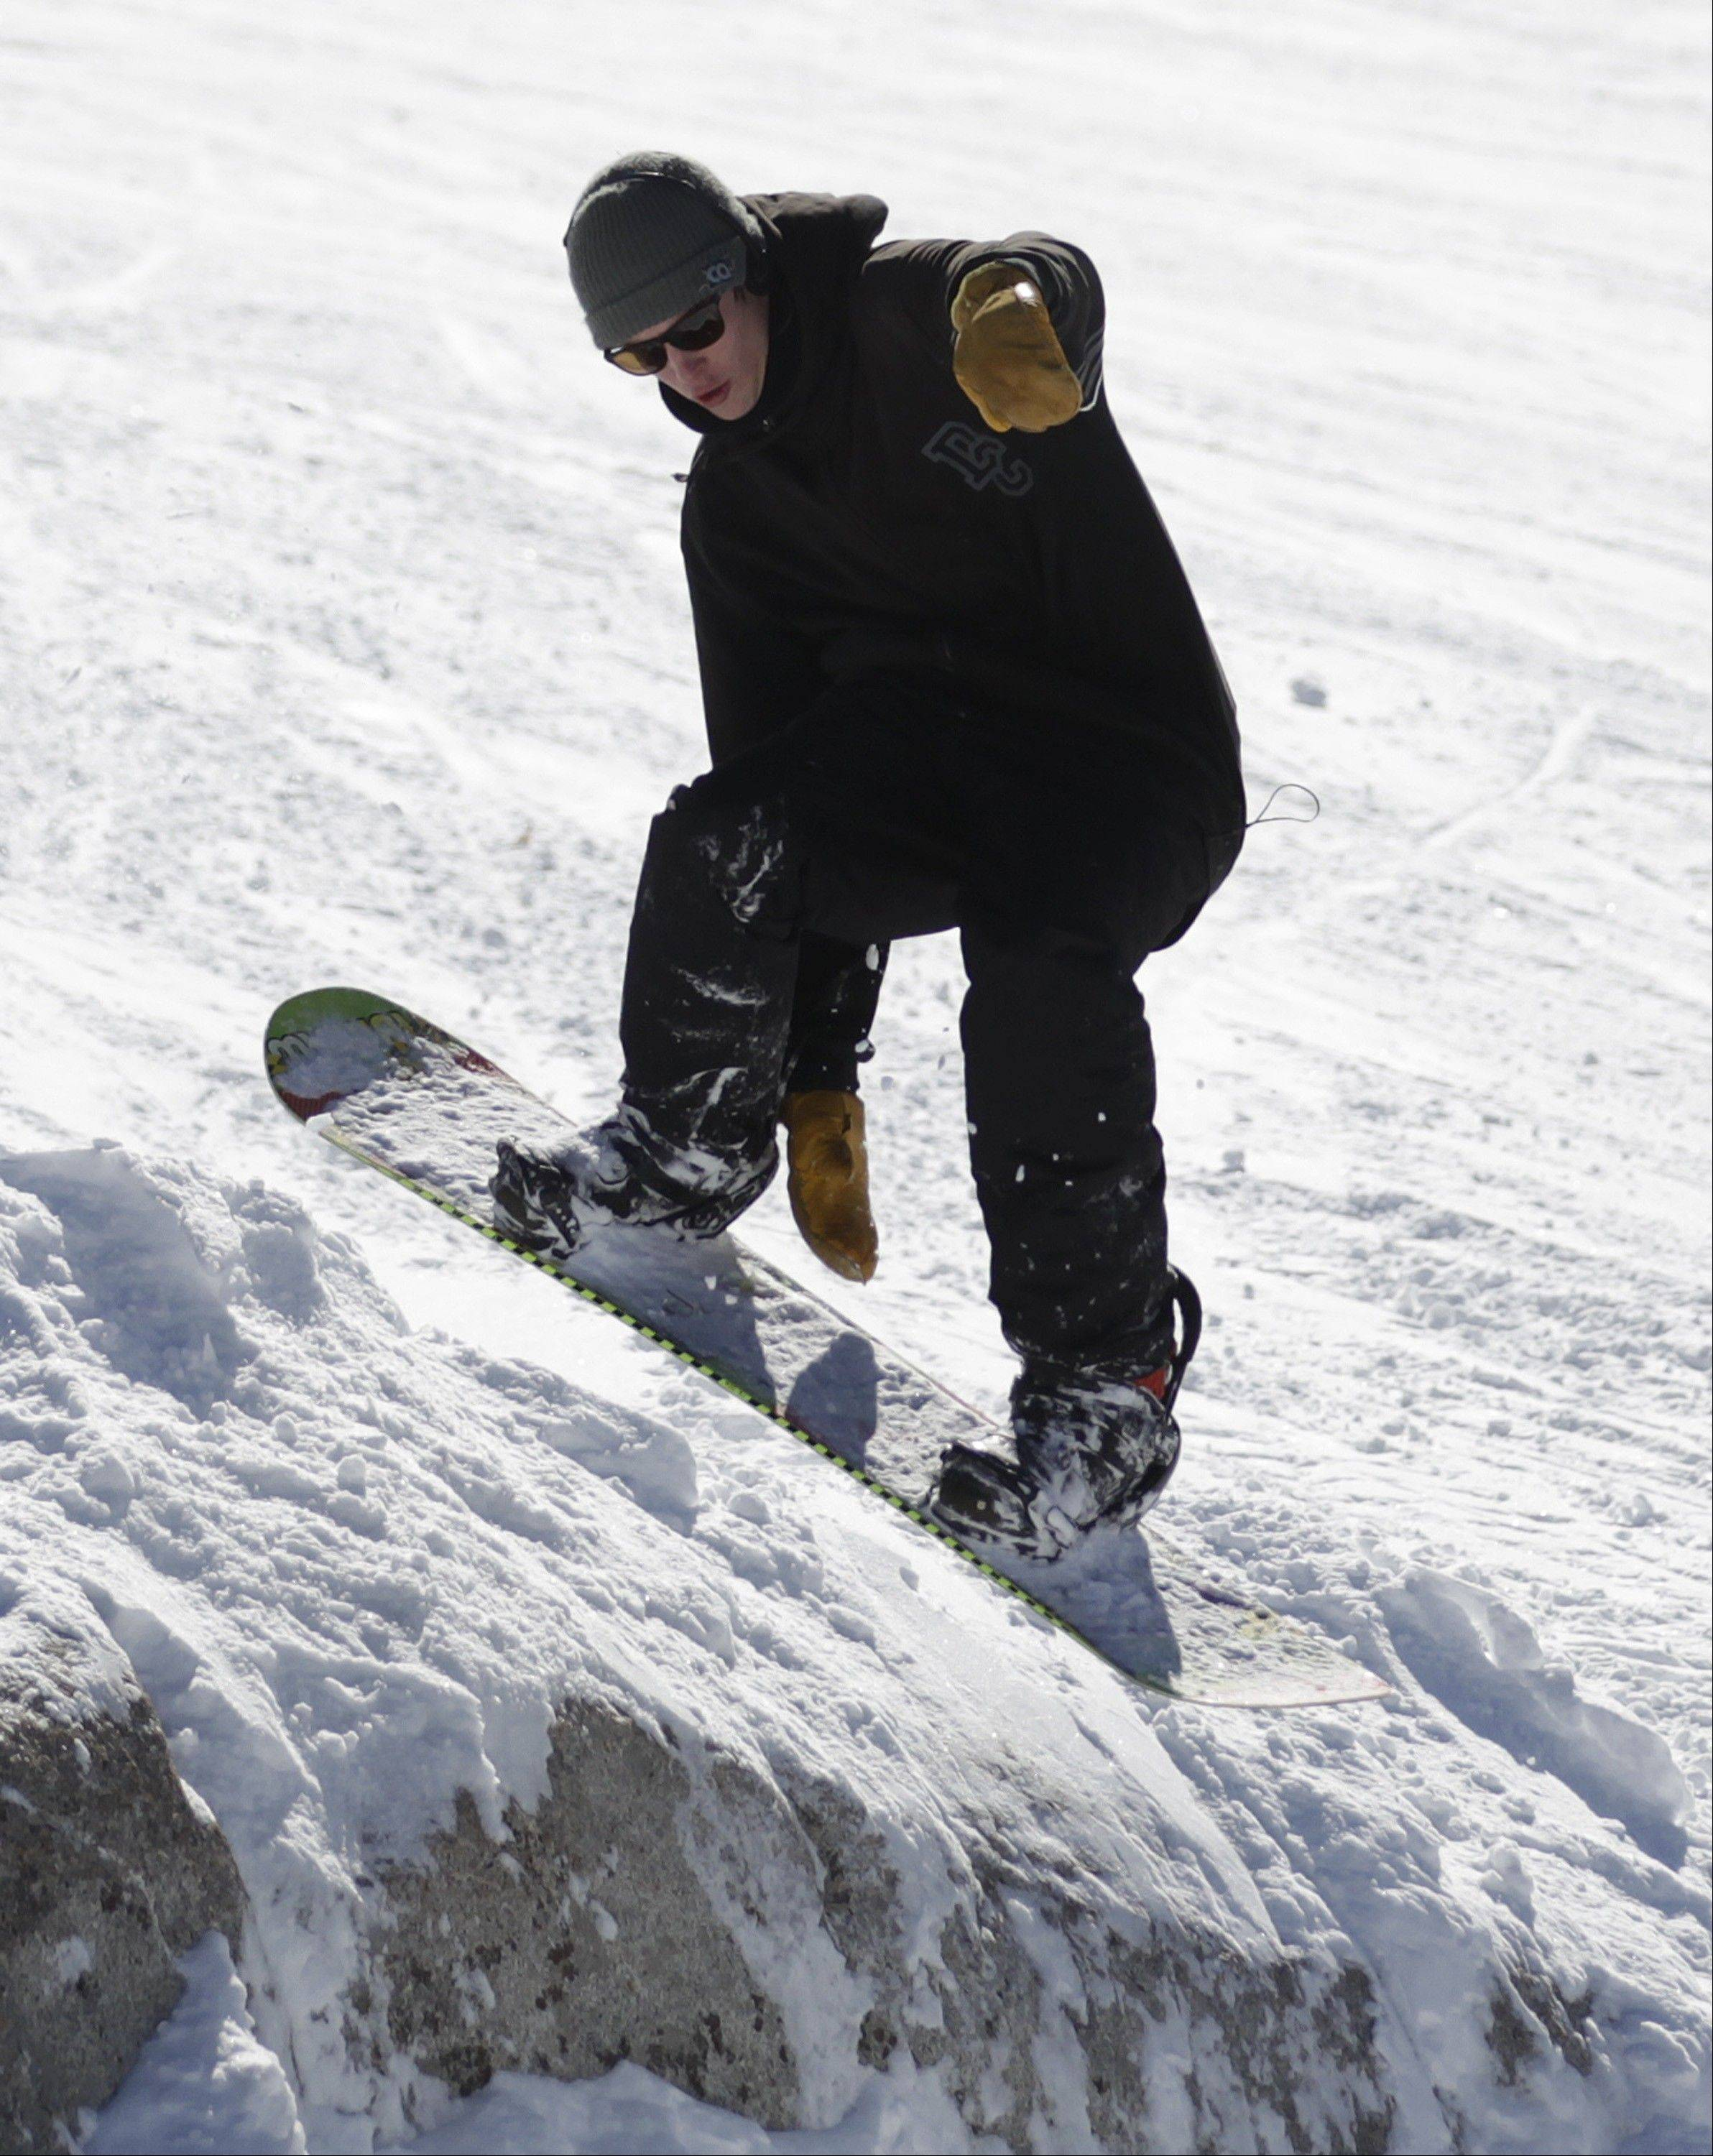 A snowboarder makes a jump at Brighton Ski Resort.